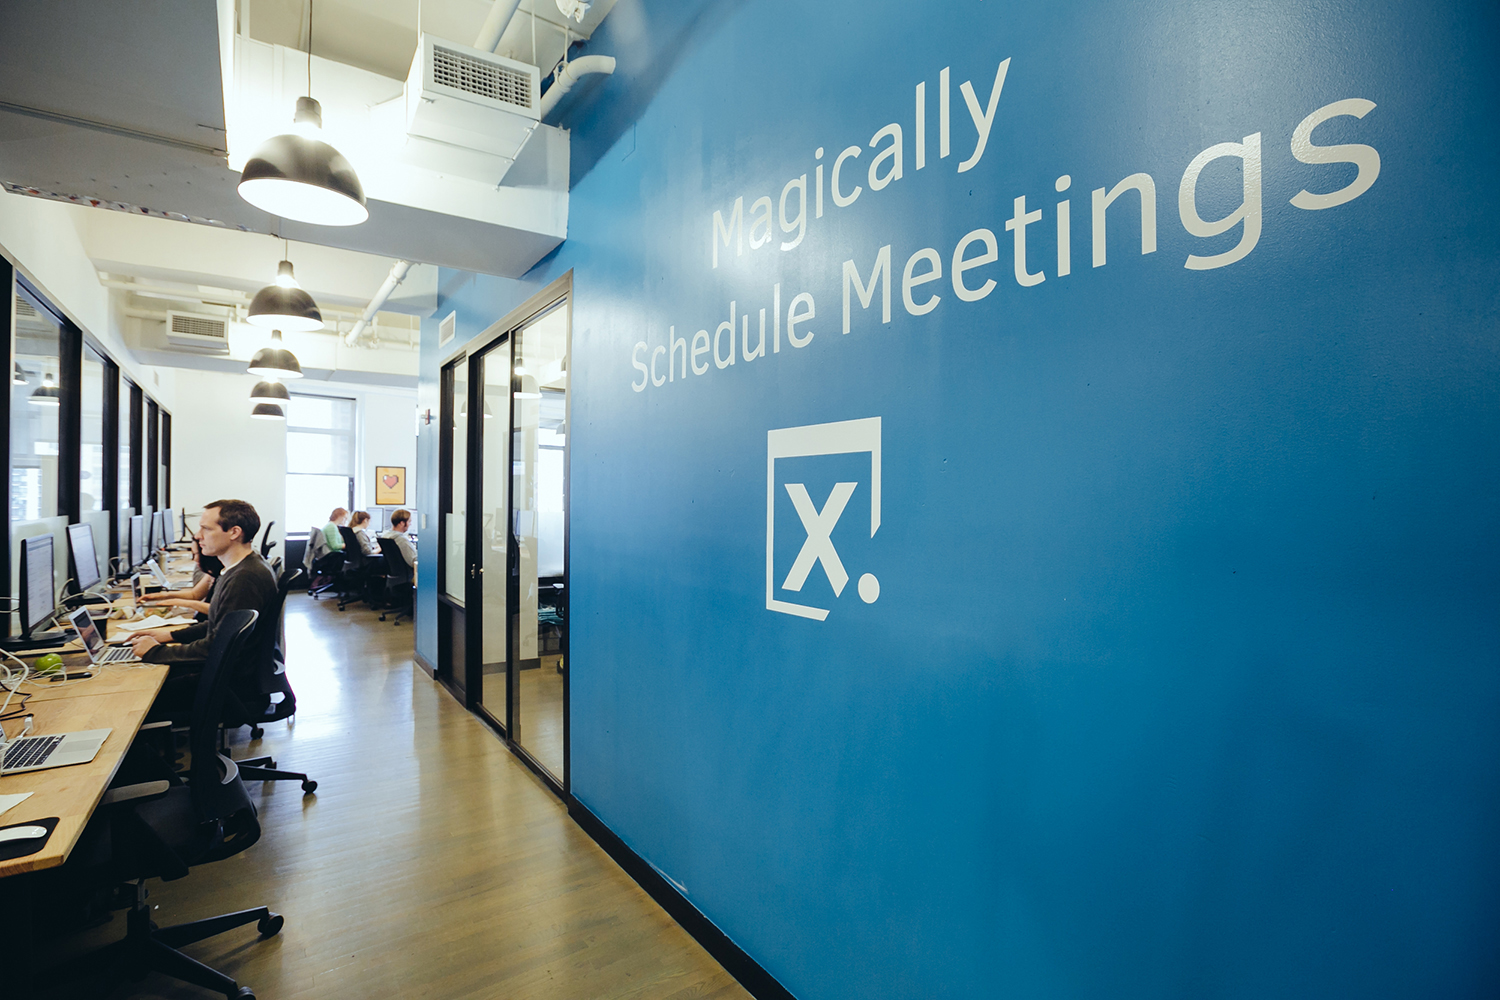 x.ia office assistants using artificial intelligence to magically schedule meetings